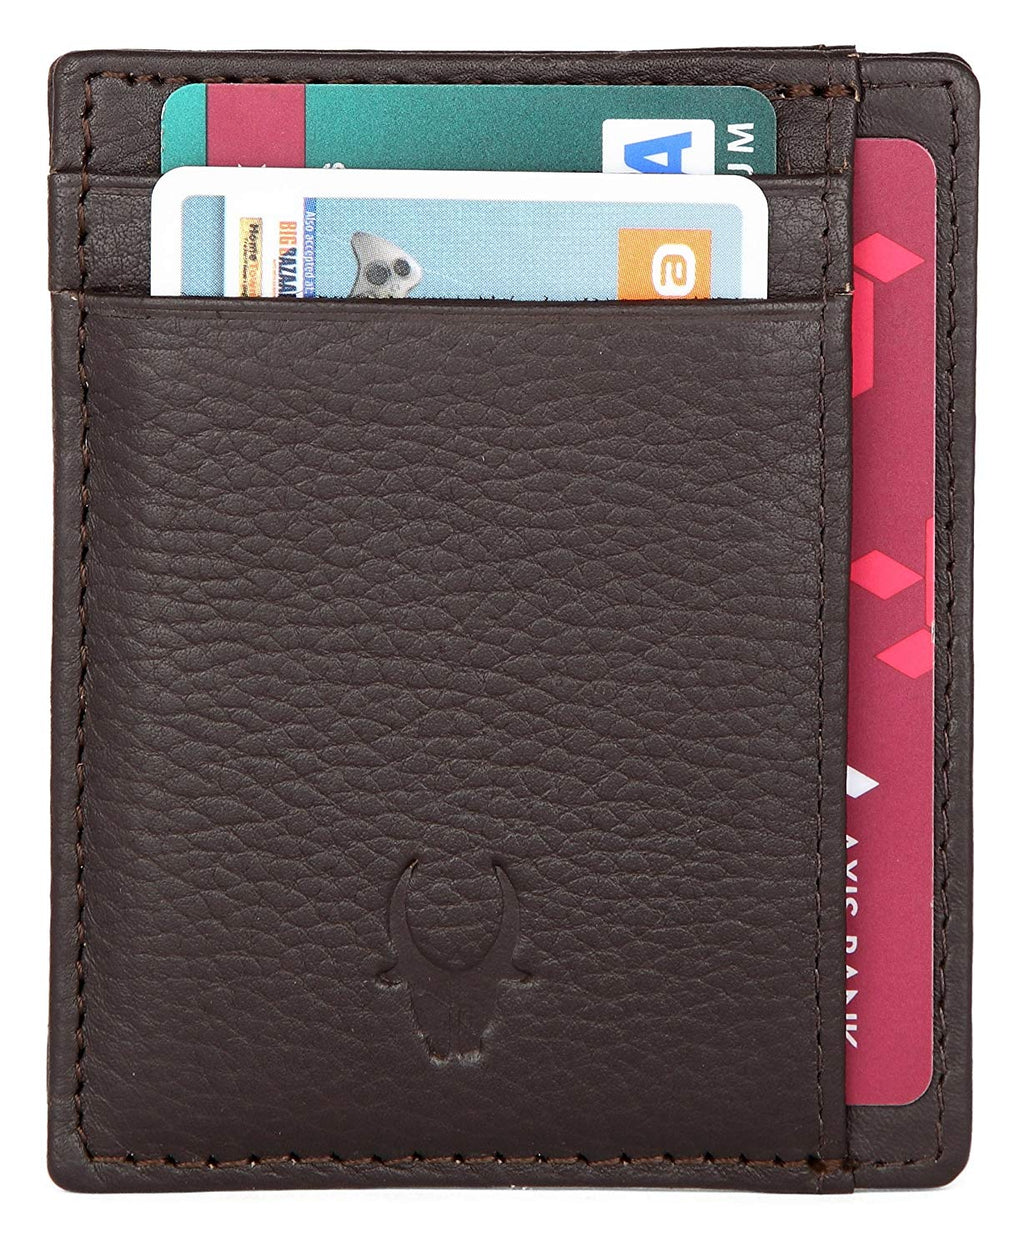 WILDHORN Brown Ndm Credit Card Holder - WILDHORN